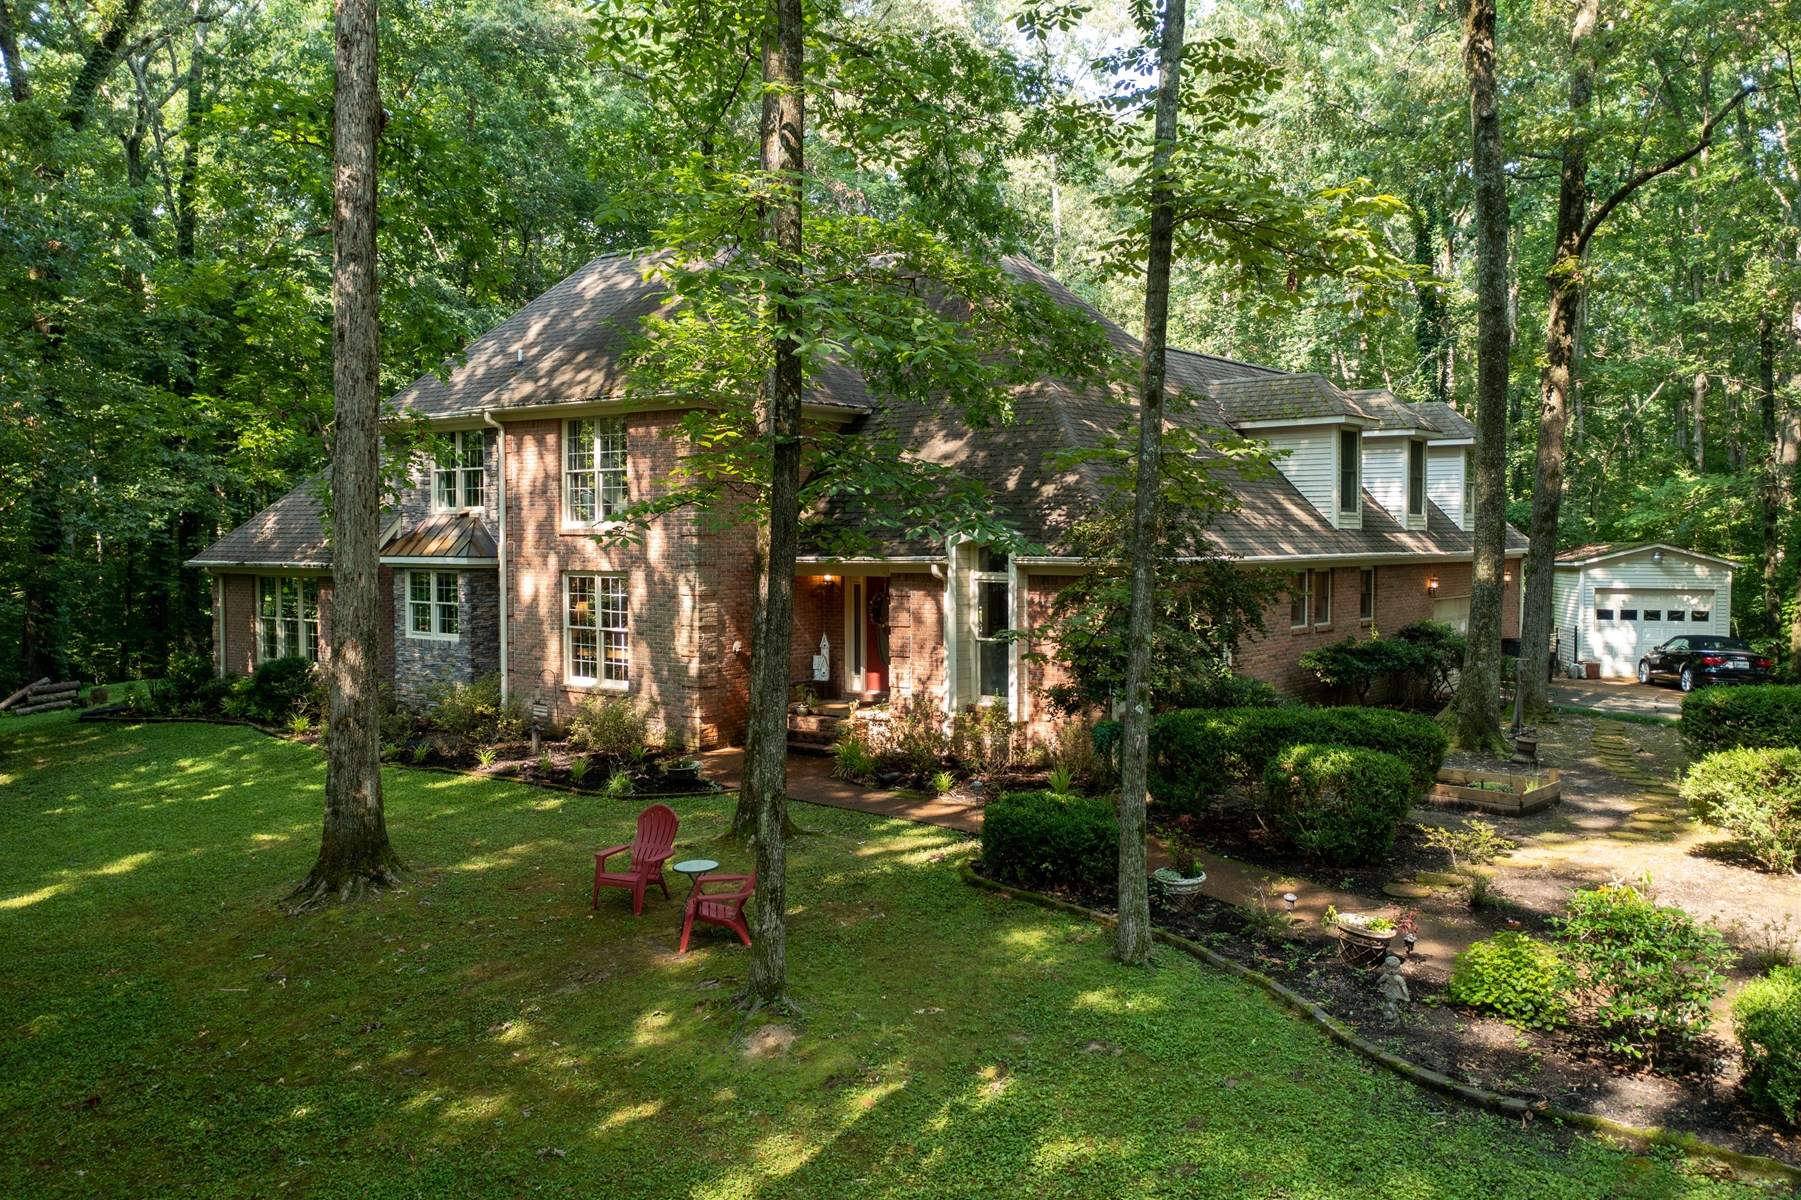 Home in Madison County 4BR 3.5BA on almost 2 acres for sale